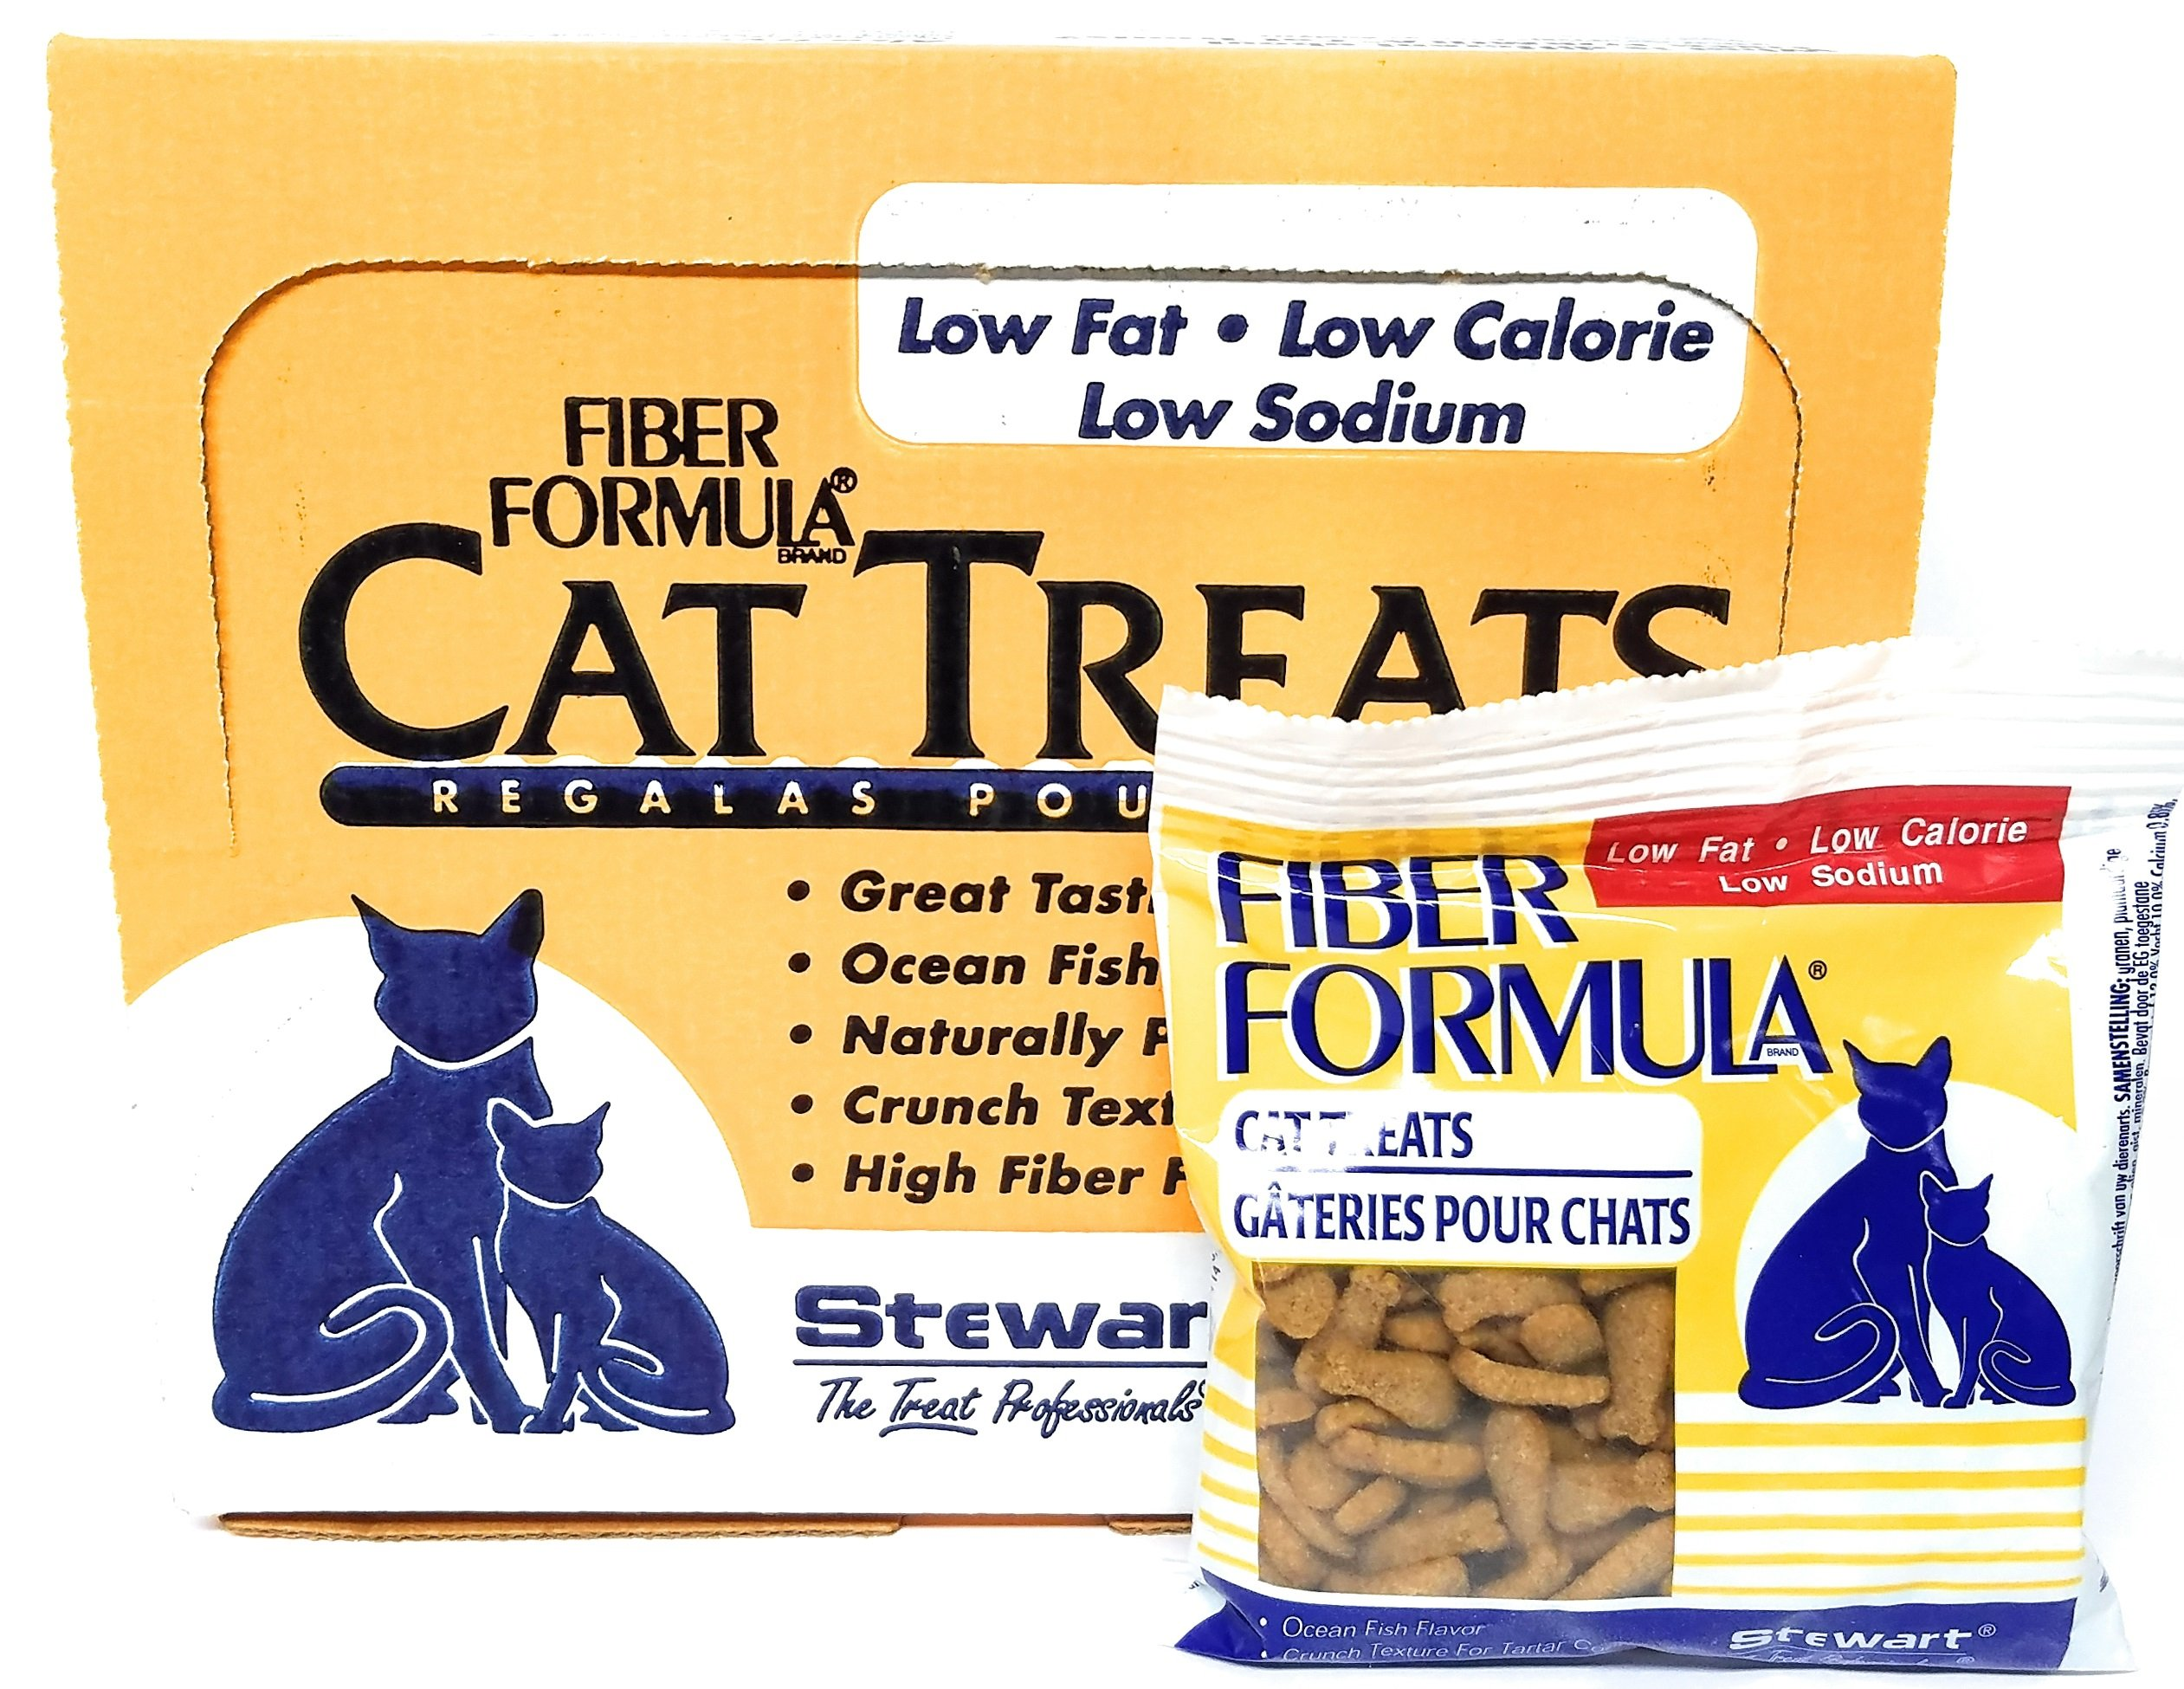 Stewart Fiber Formula Cat Treats, Low Sodium, Low Fat, High Fiber, 2.1 oz Pouch by Stewart